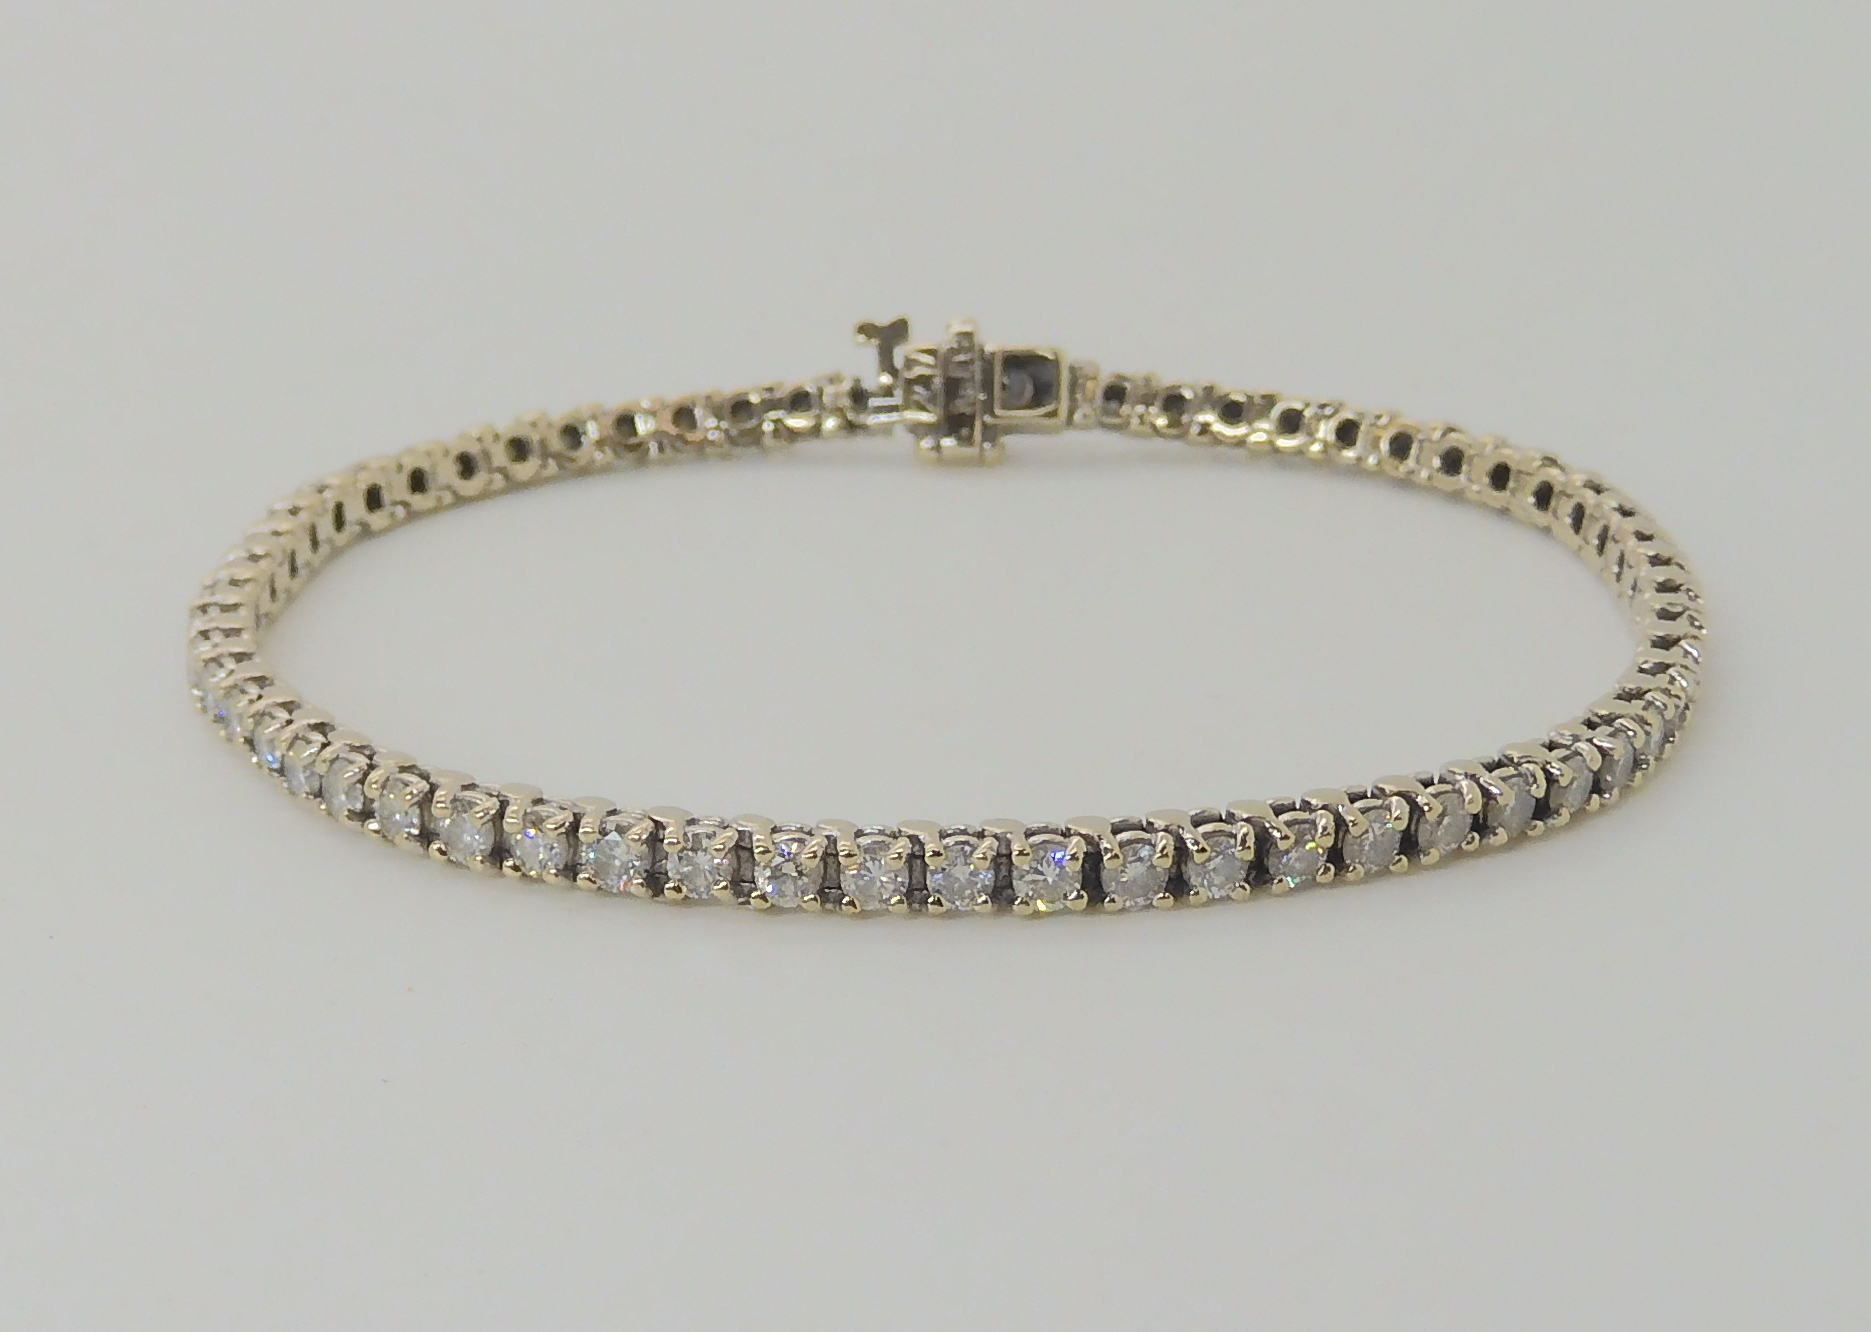 AN 18K WHITE GOLD DIAMOND LINE BRACELET set with estimated approx 2.7cts of brilliant cut - Image 2 of 5